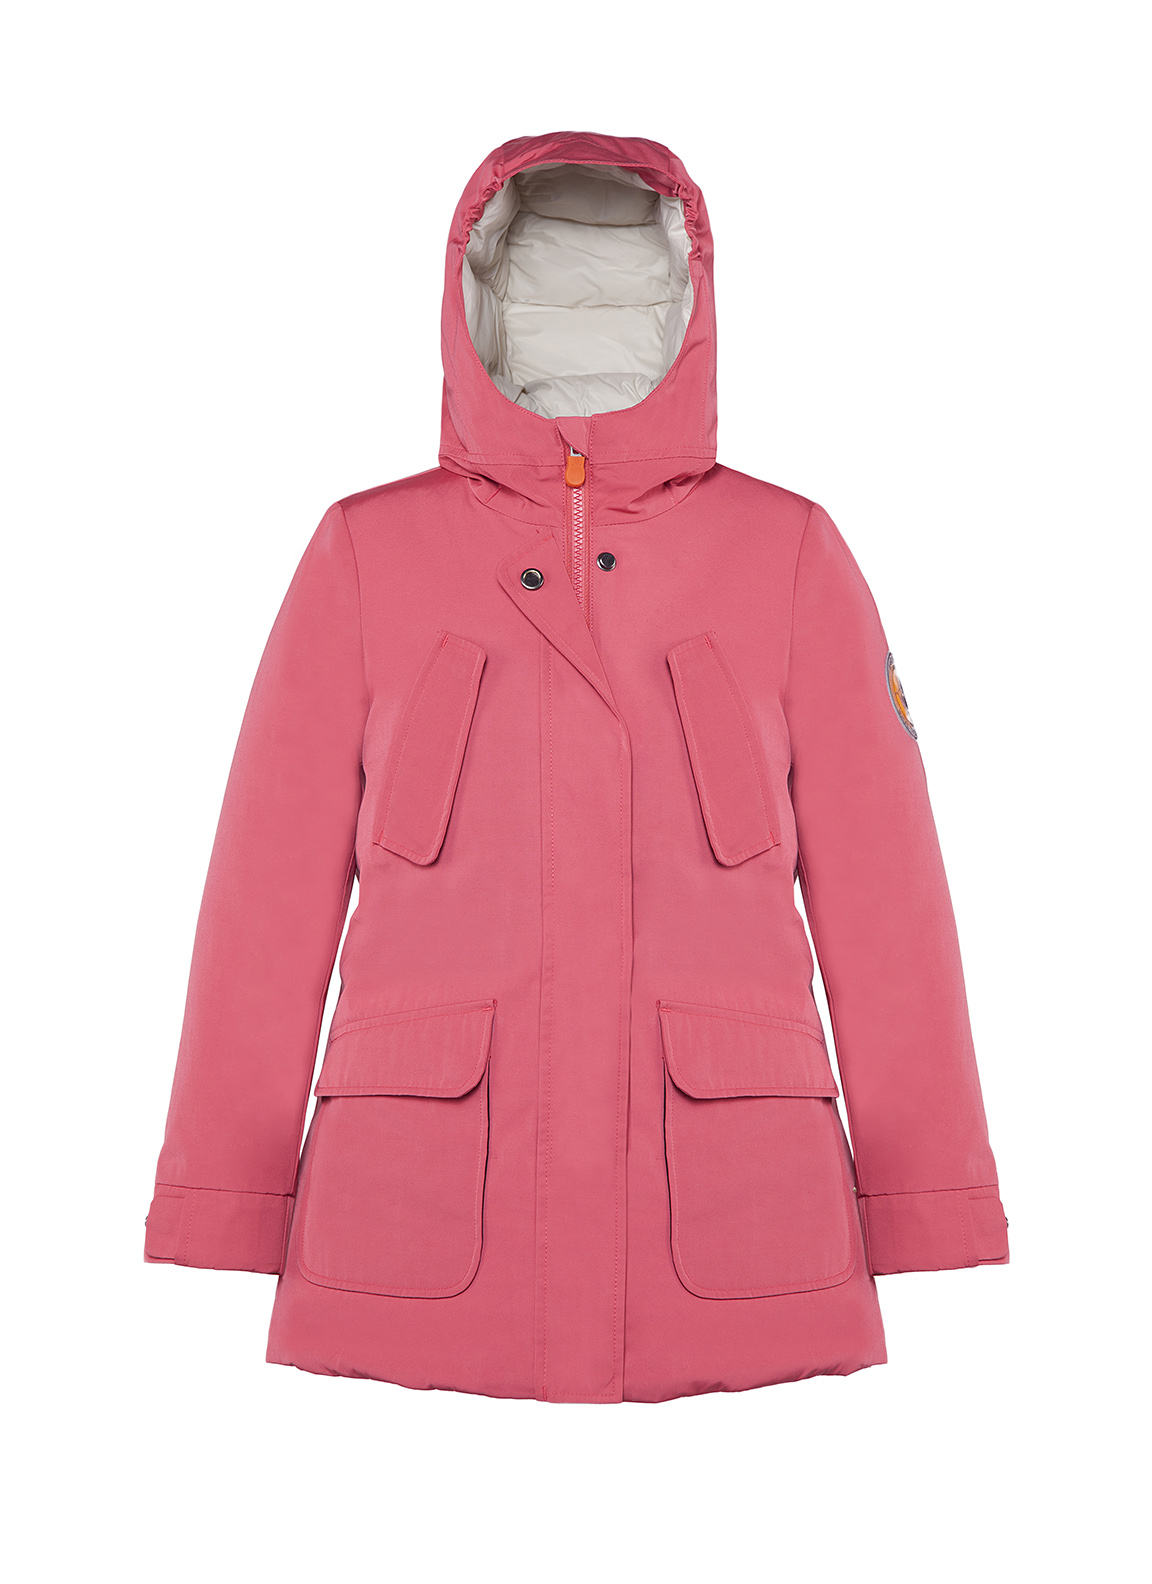 Save the Duck Kids AI17-18 Artic Parka Girl